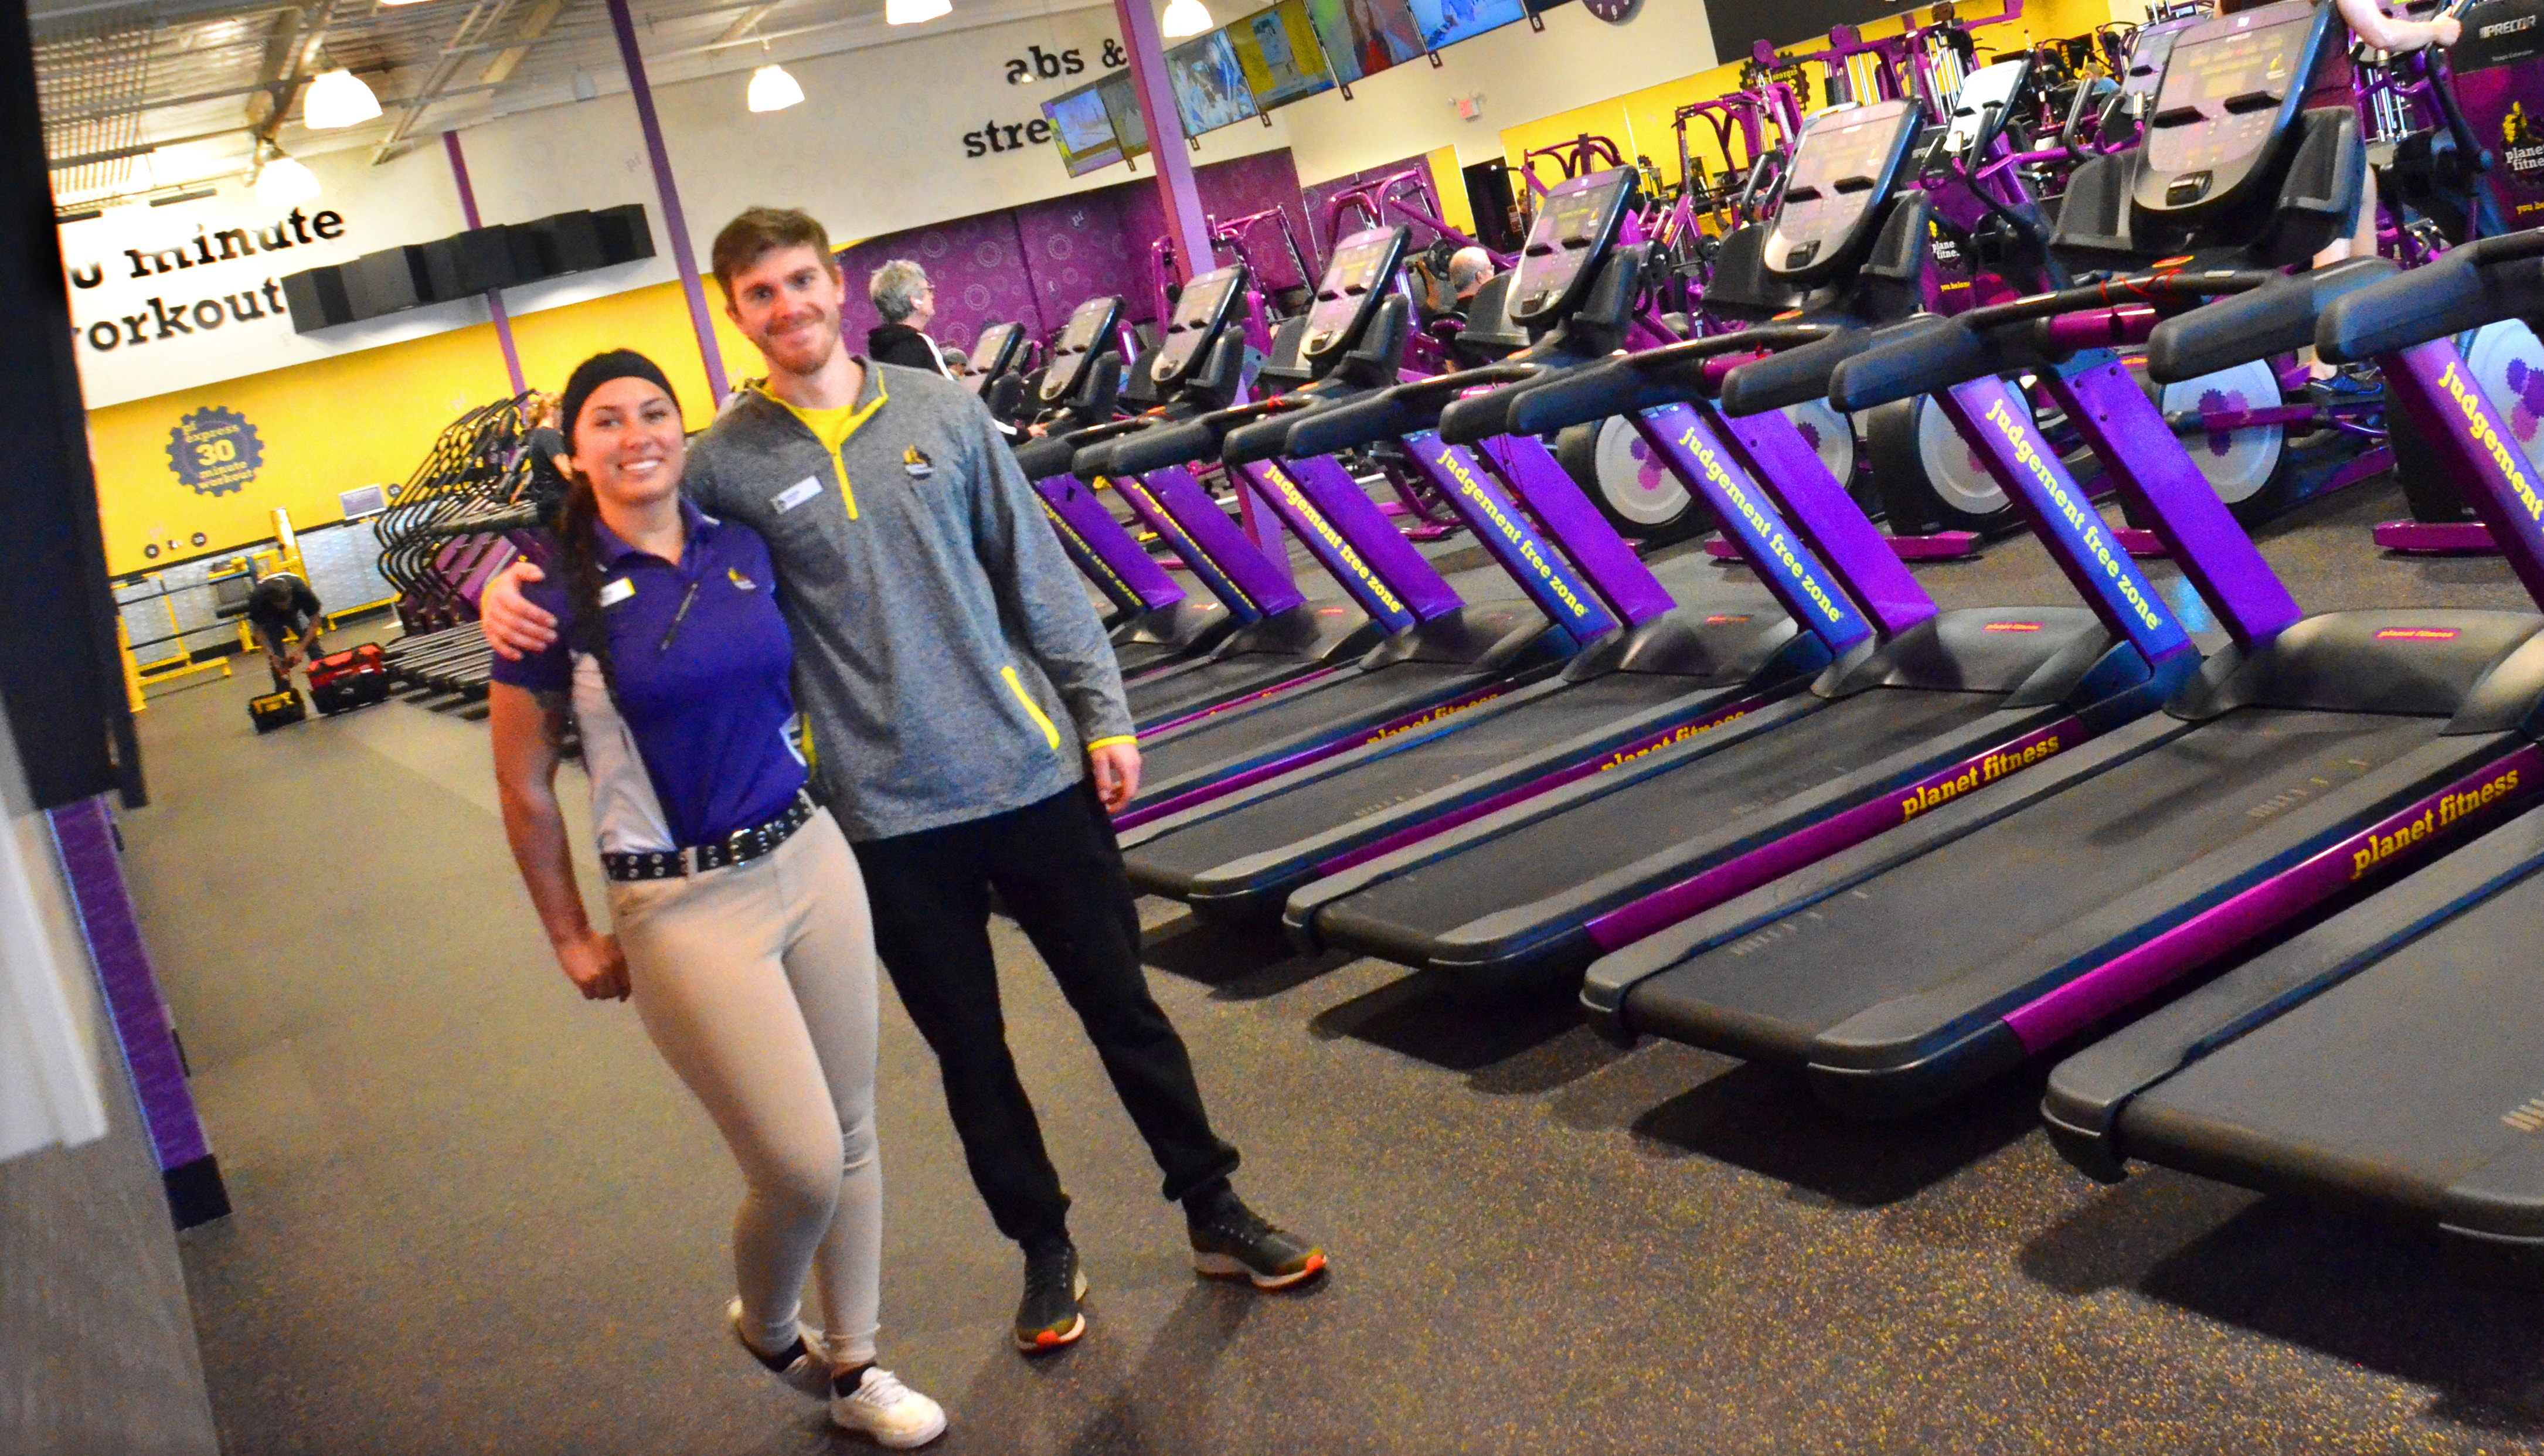 New Judgment Free Fitness Center Opens In Cottonwood The Verde Independent Cottonwood Az